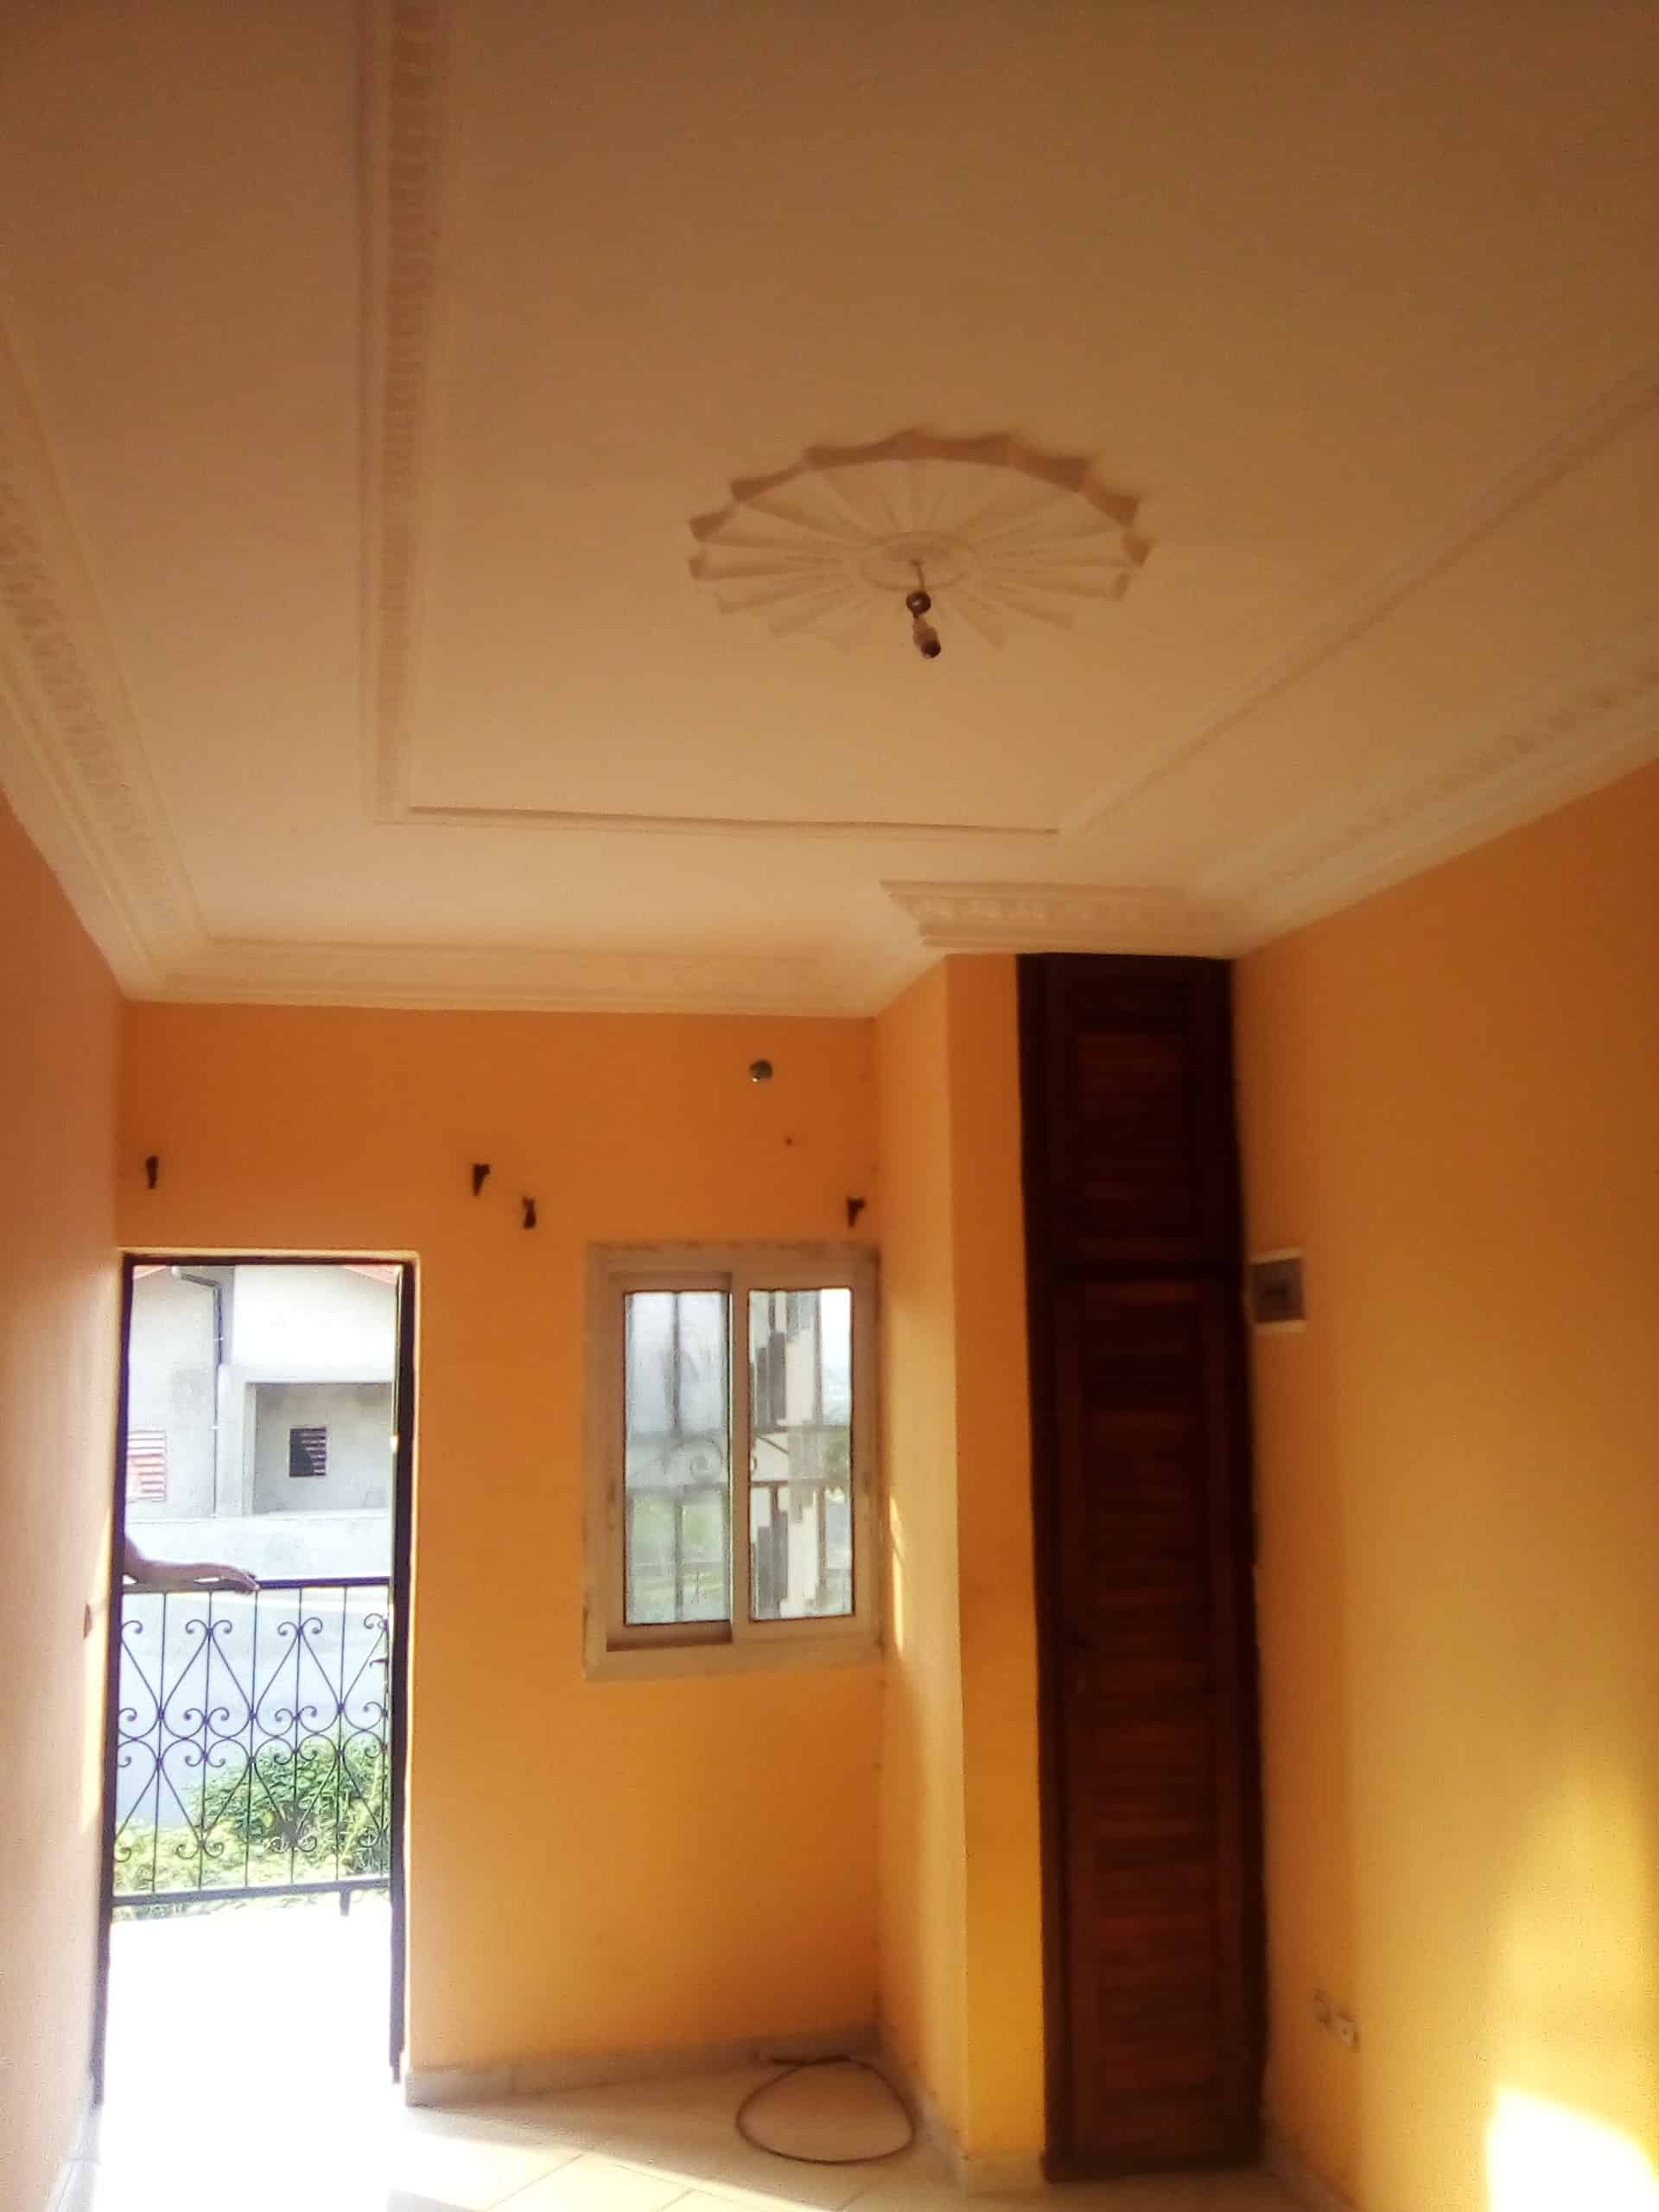 Studio to rent - Douala, Bangue, Vers le collège sofrane - 45 000 FCFA / month